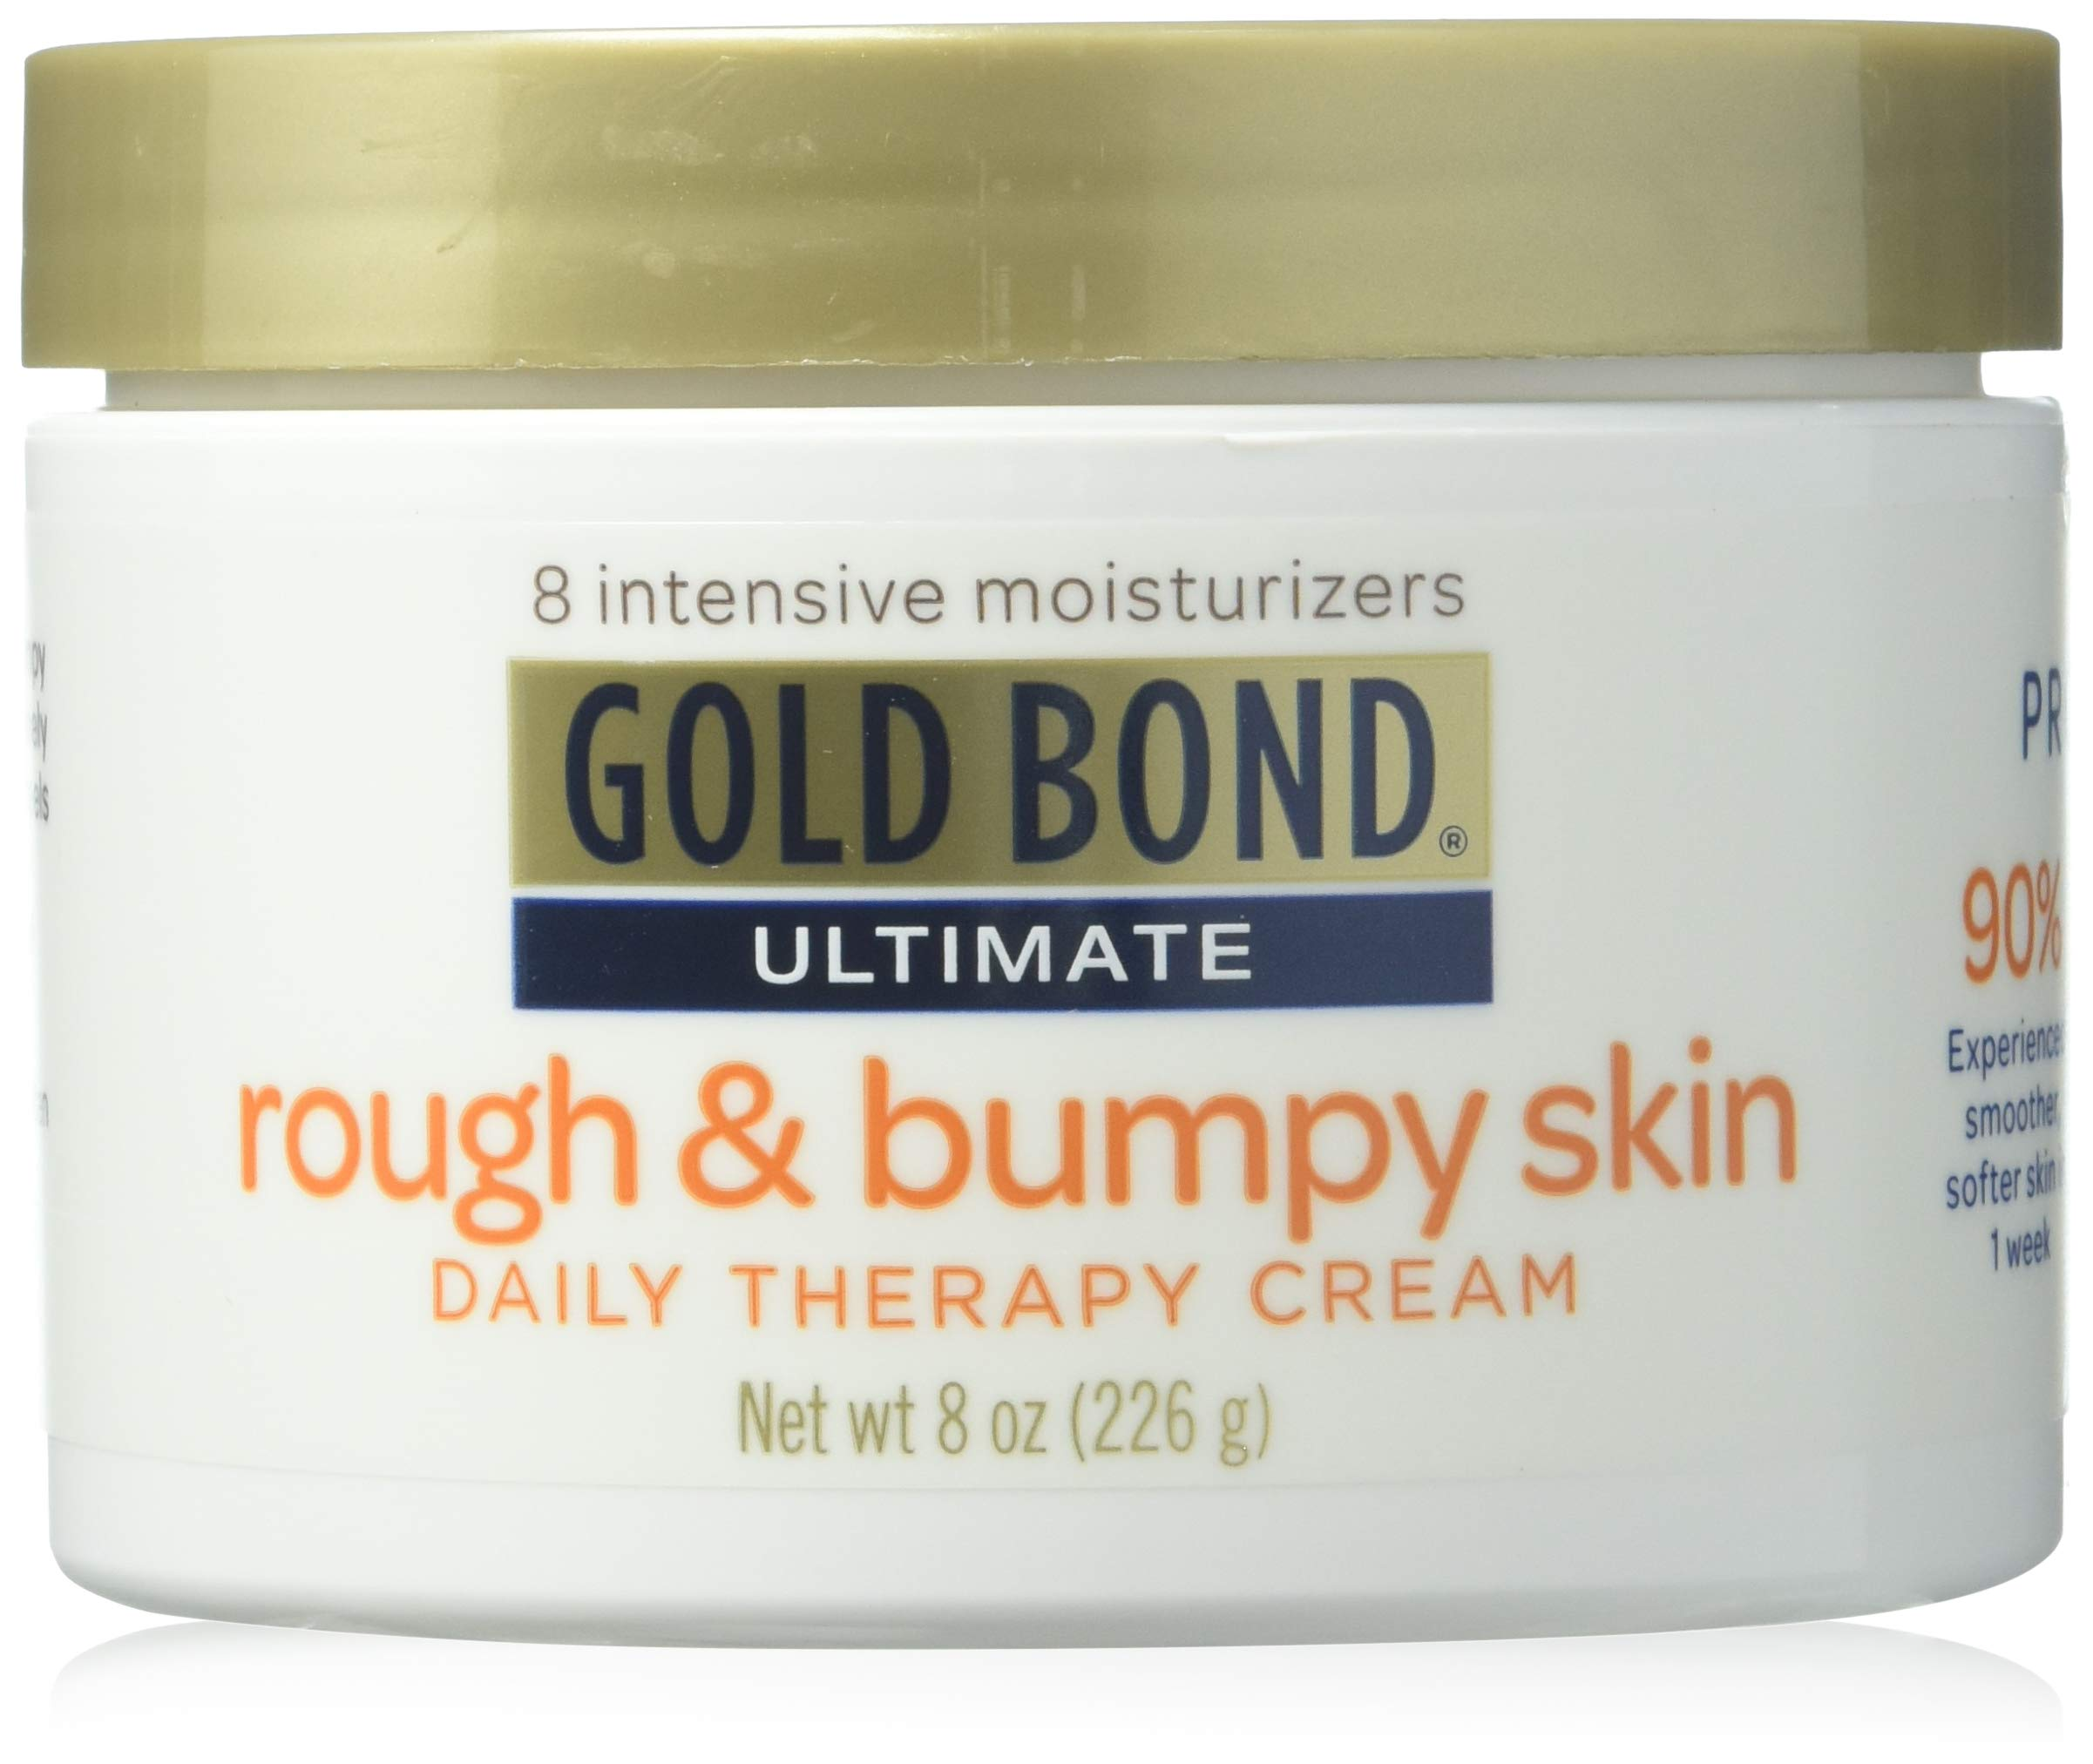 Gold Bond Ultimate Rough and Bumpy Skin Daily Therapy Cream, 8 oz,Pack of 3 by Gold Bond (Image #1)